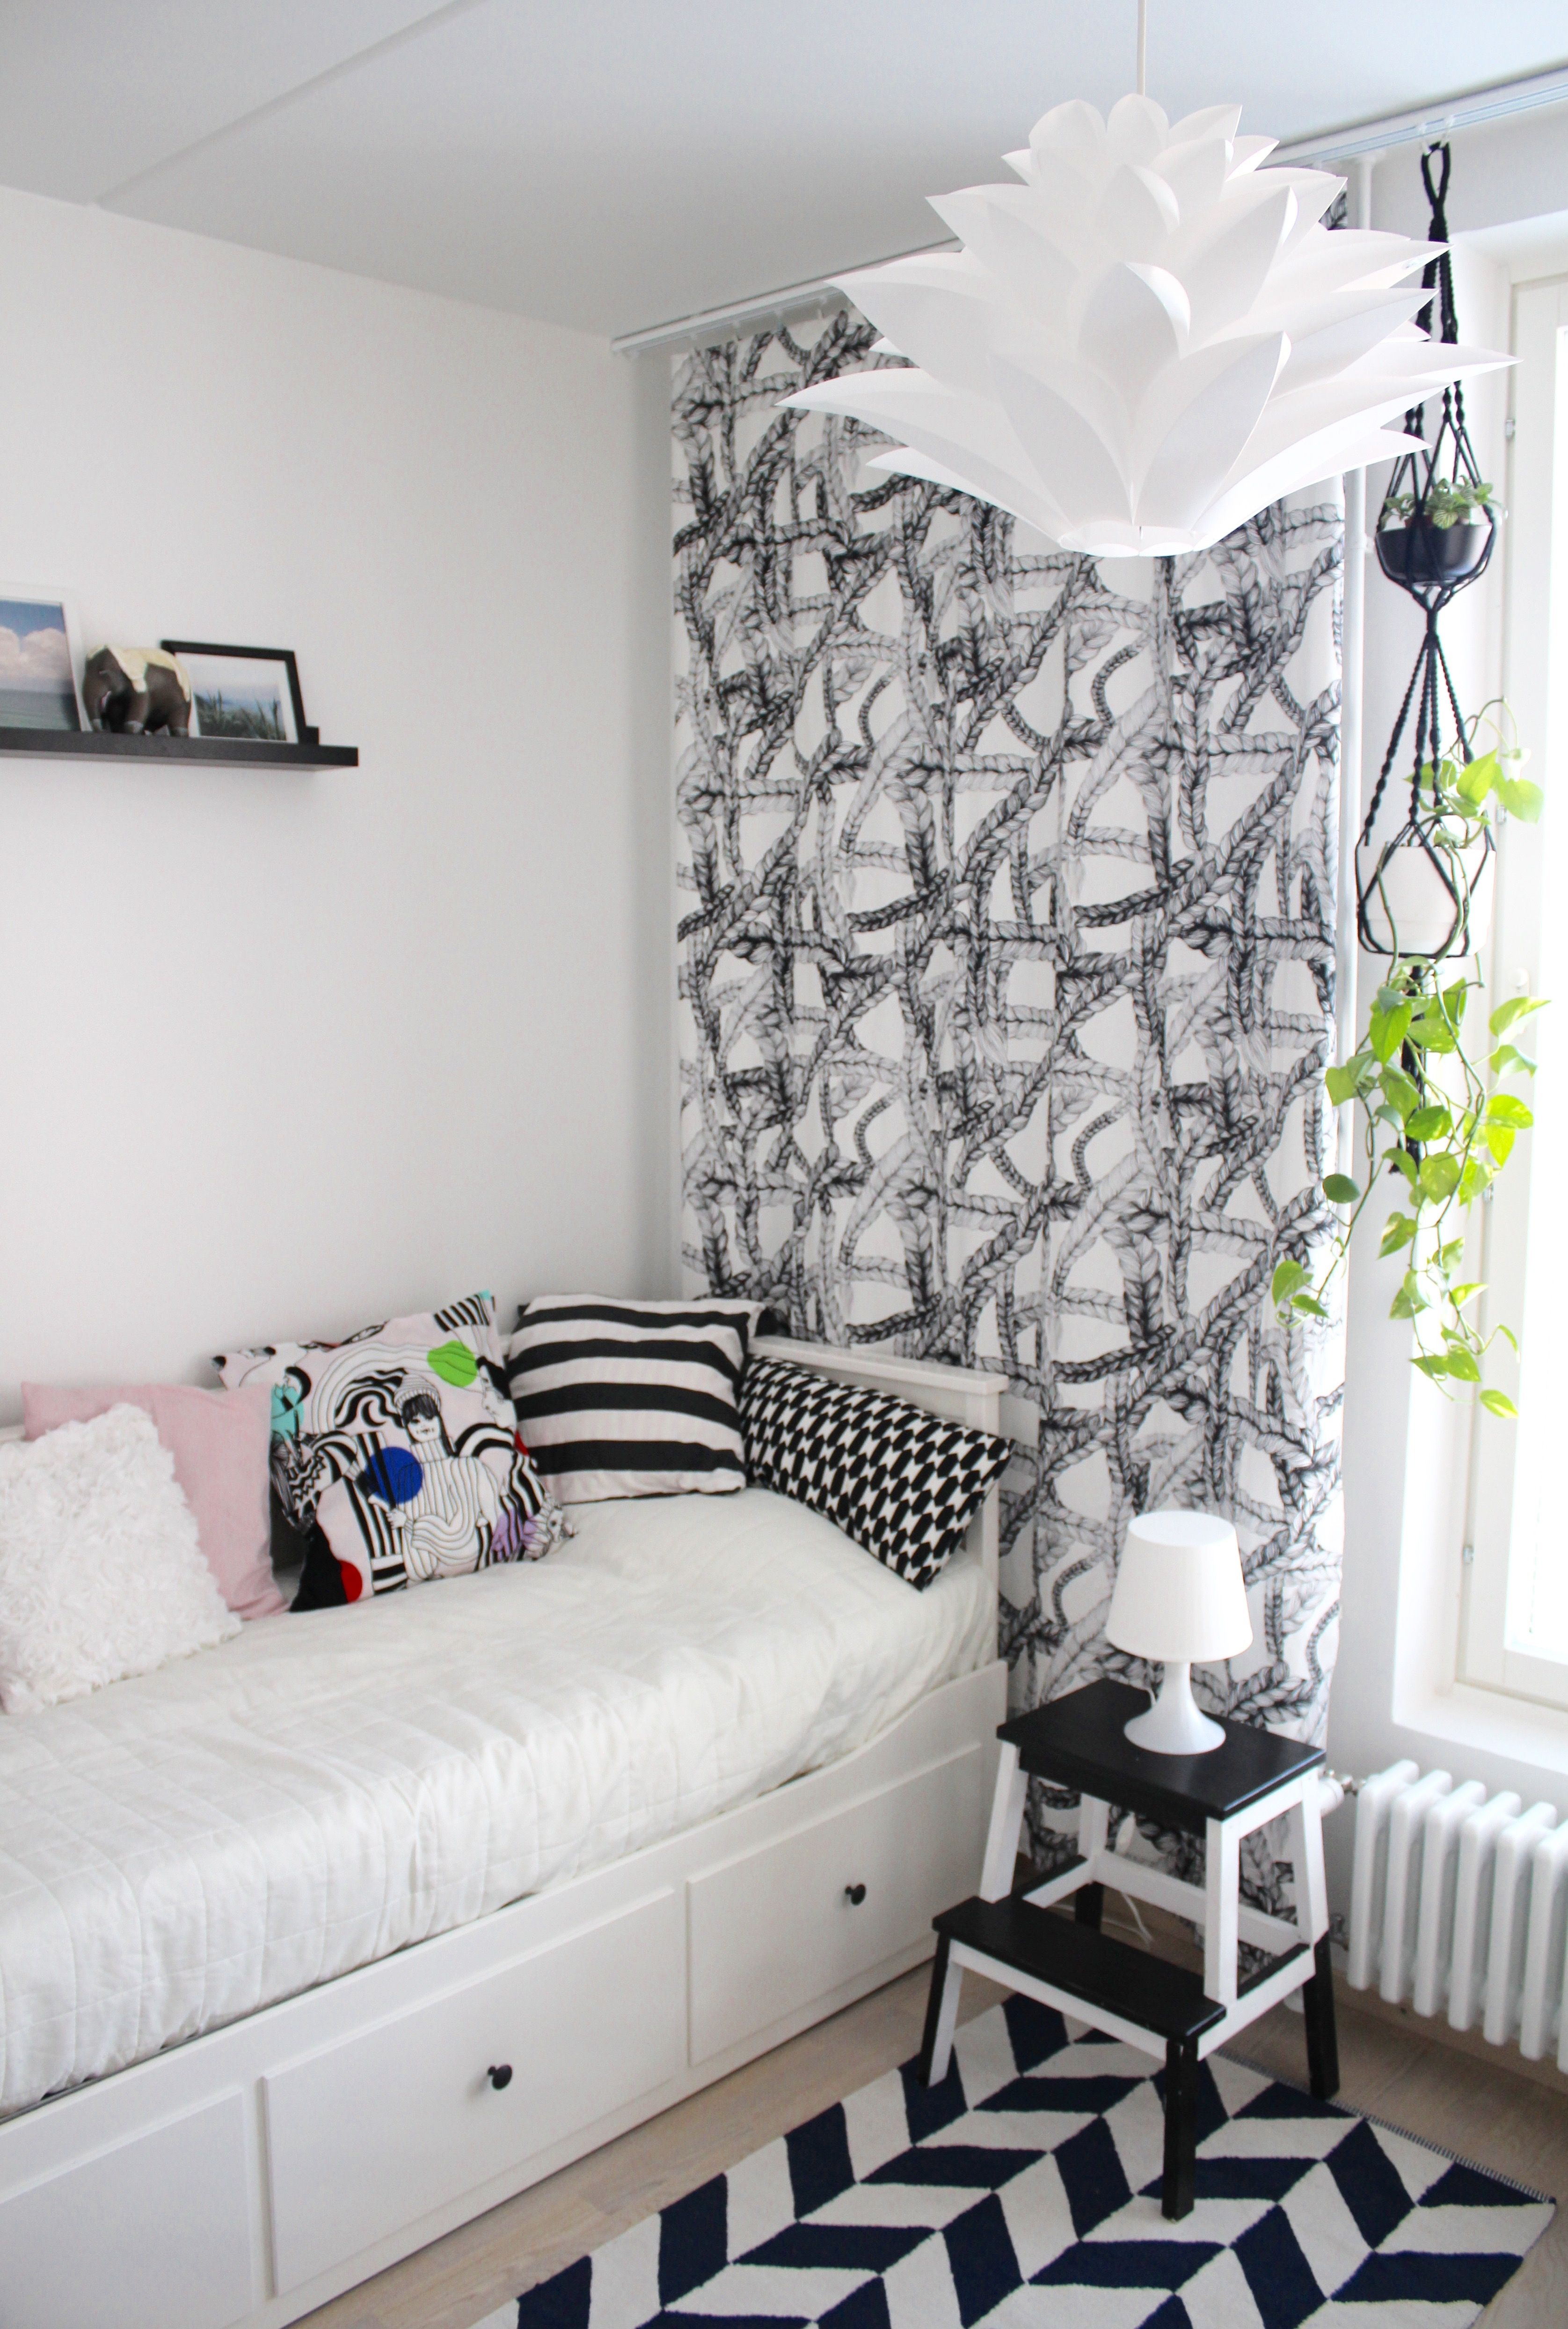 Diy Inspiration Daybeds: Letti Curtain By Vimma Company / Hemnes Daybed / Ikea